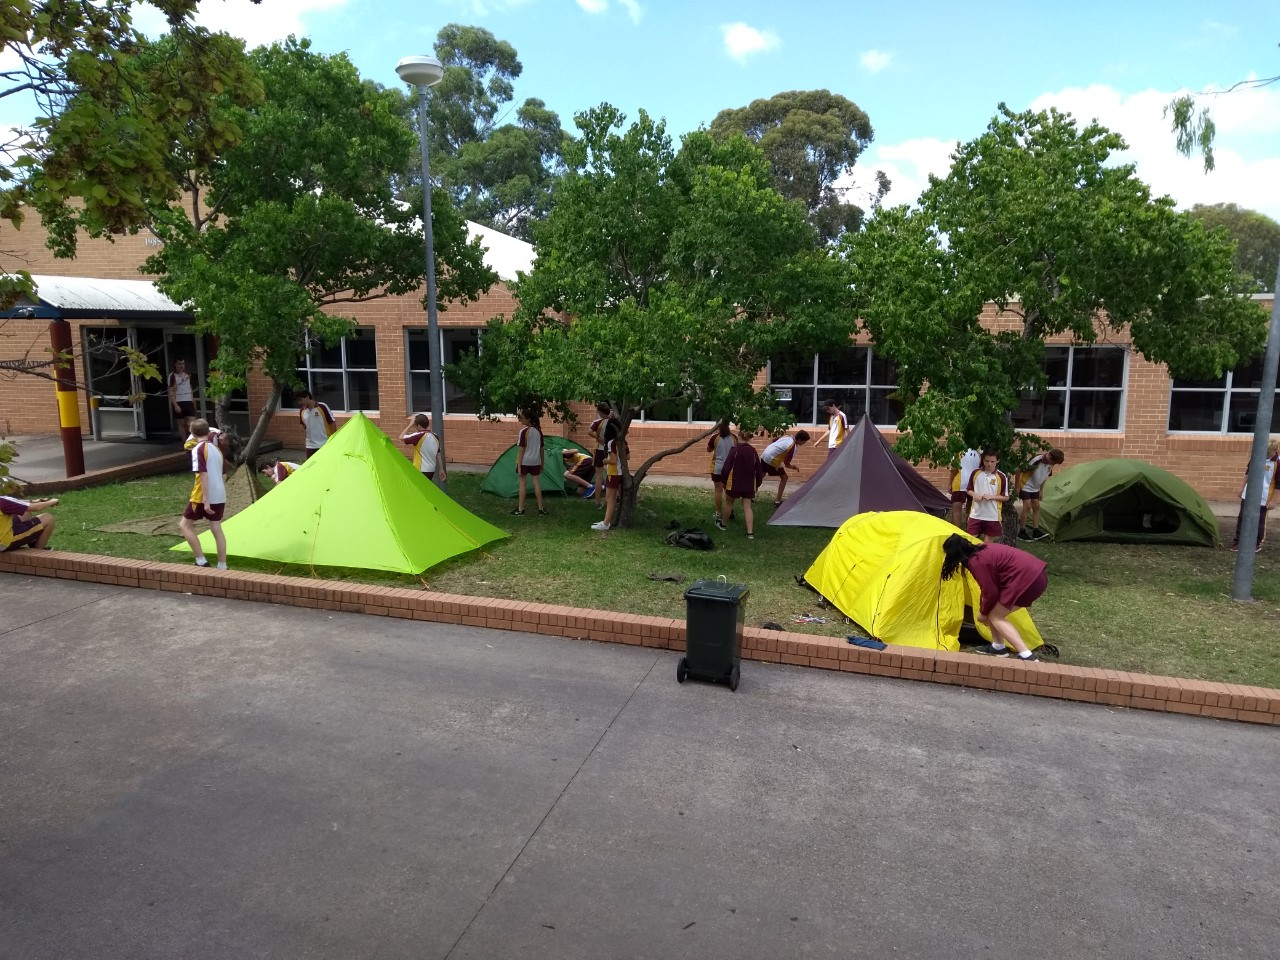 Students practising how to put tents up in school grounds for Duke of Edinburgh program